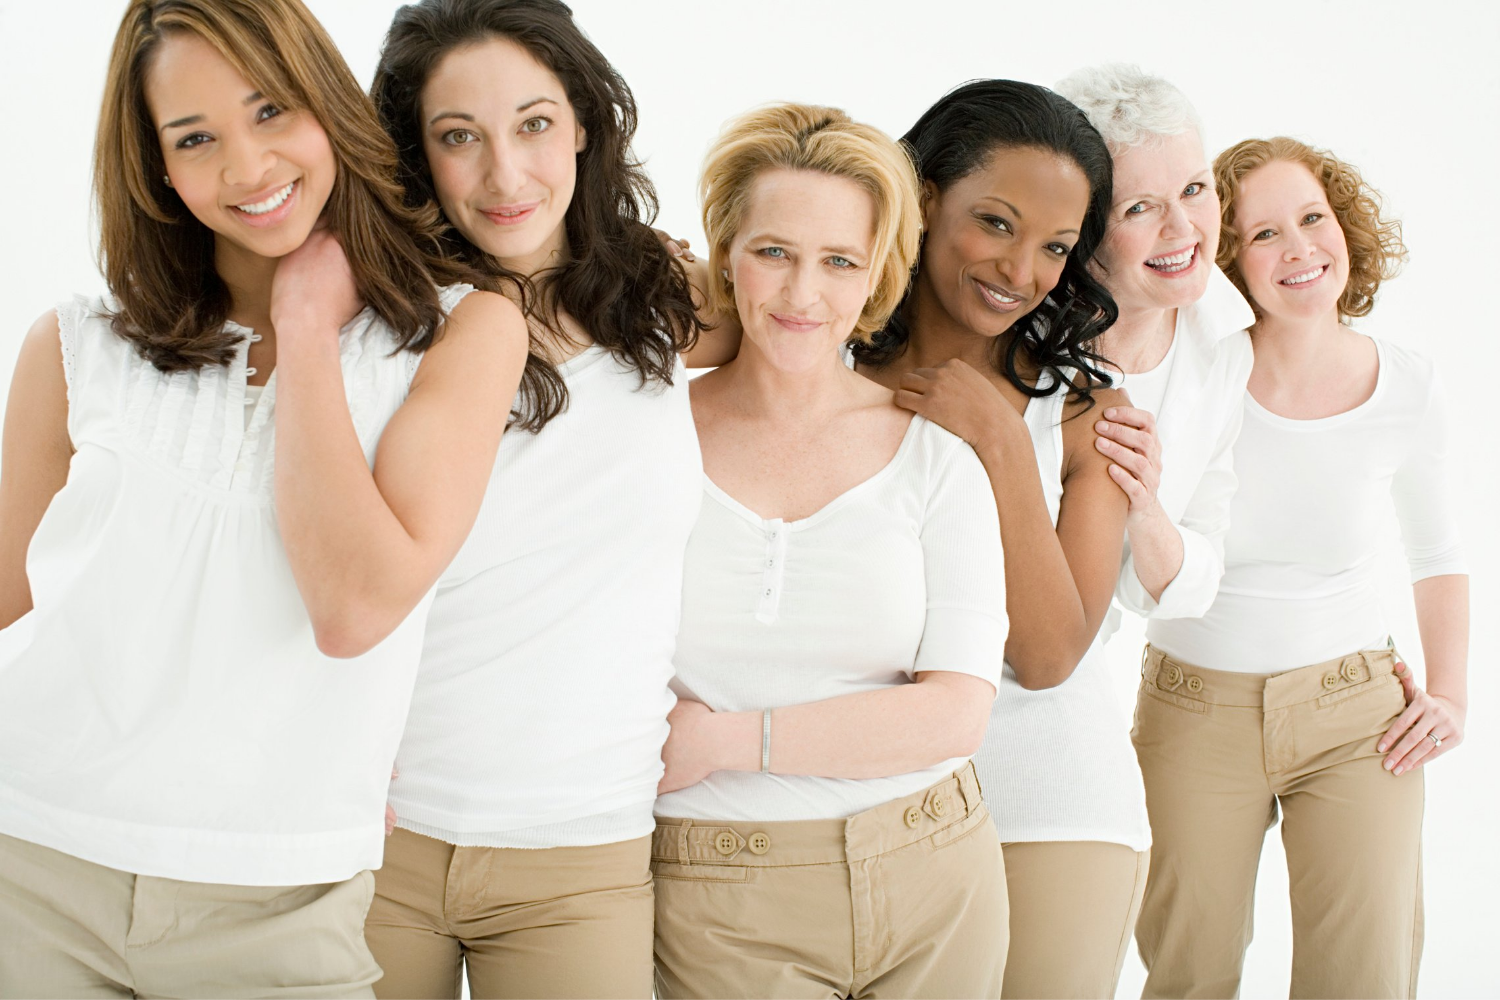 females who suffered from sexual health disorders now feel their best after receiving help from LifeGaines sexual health profefessionals